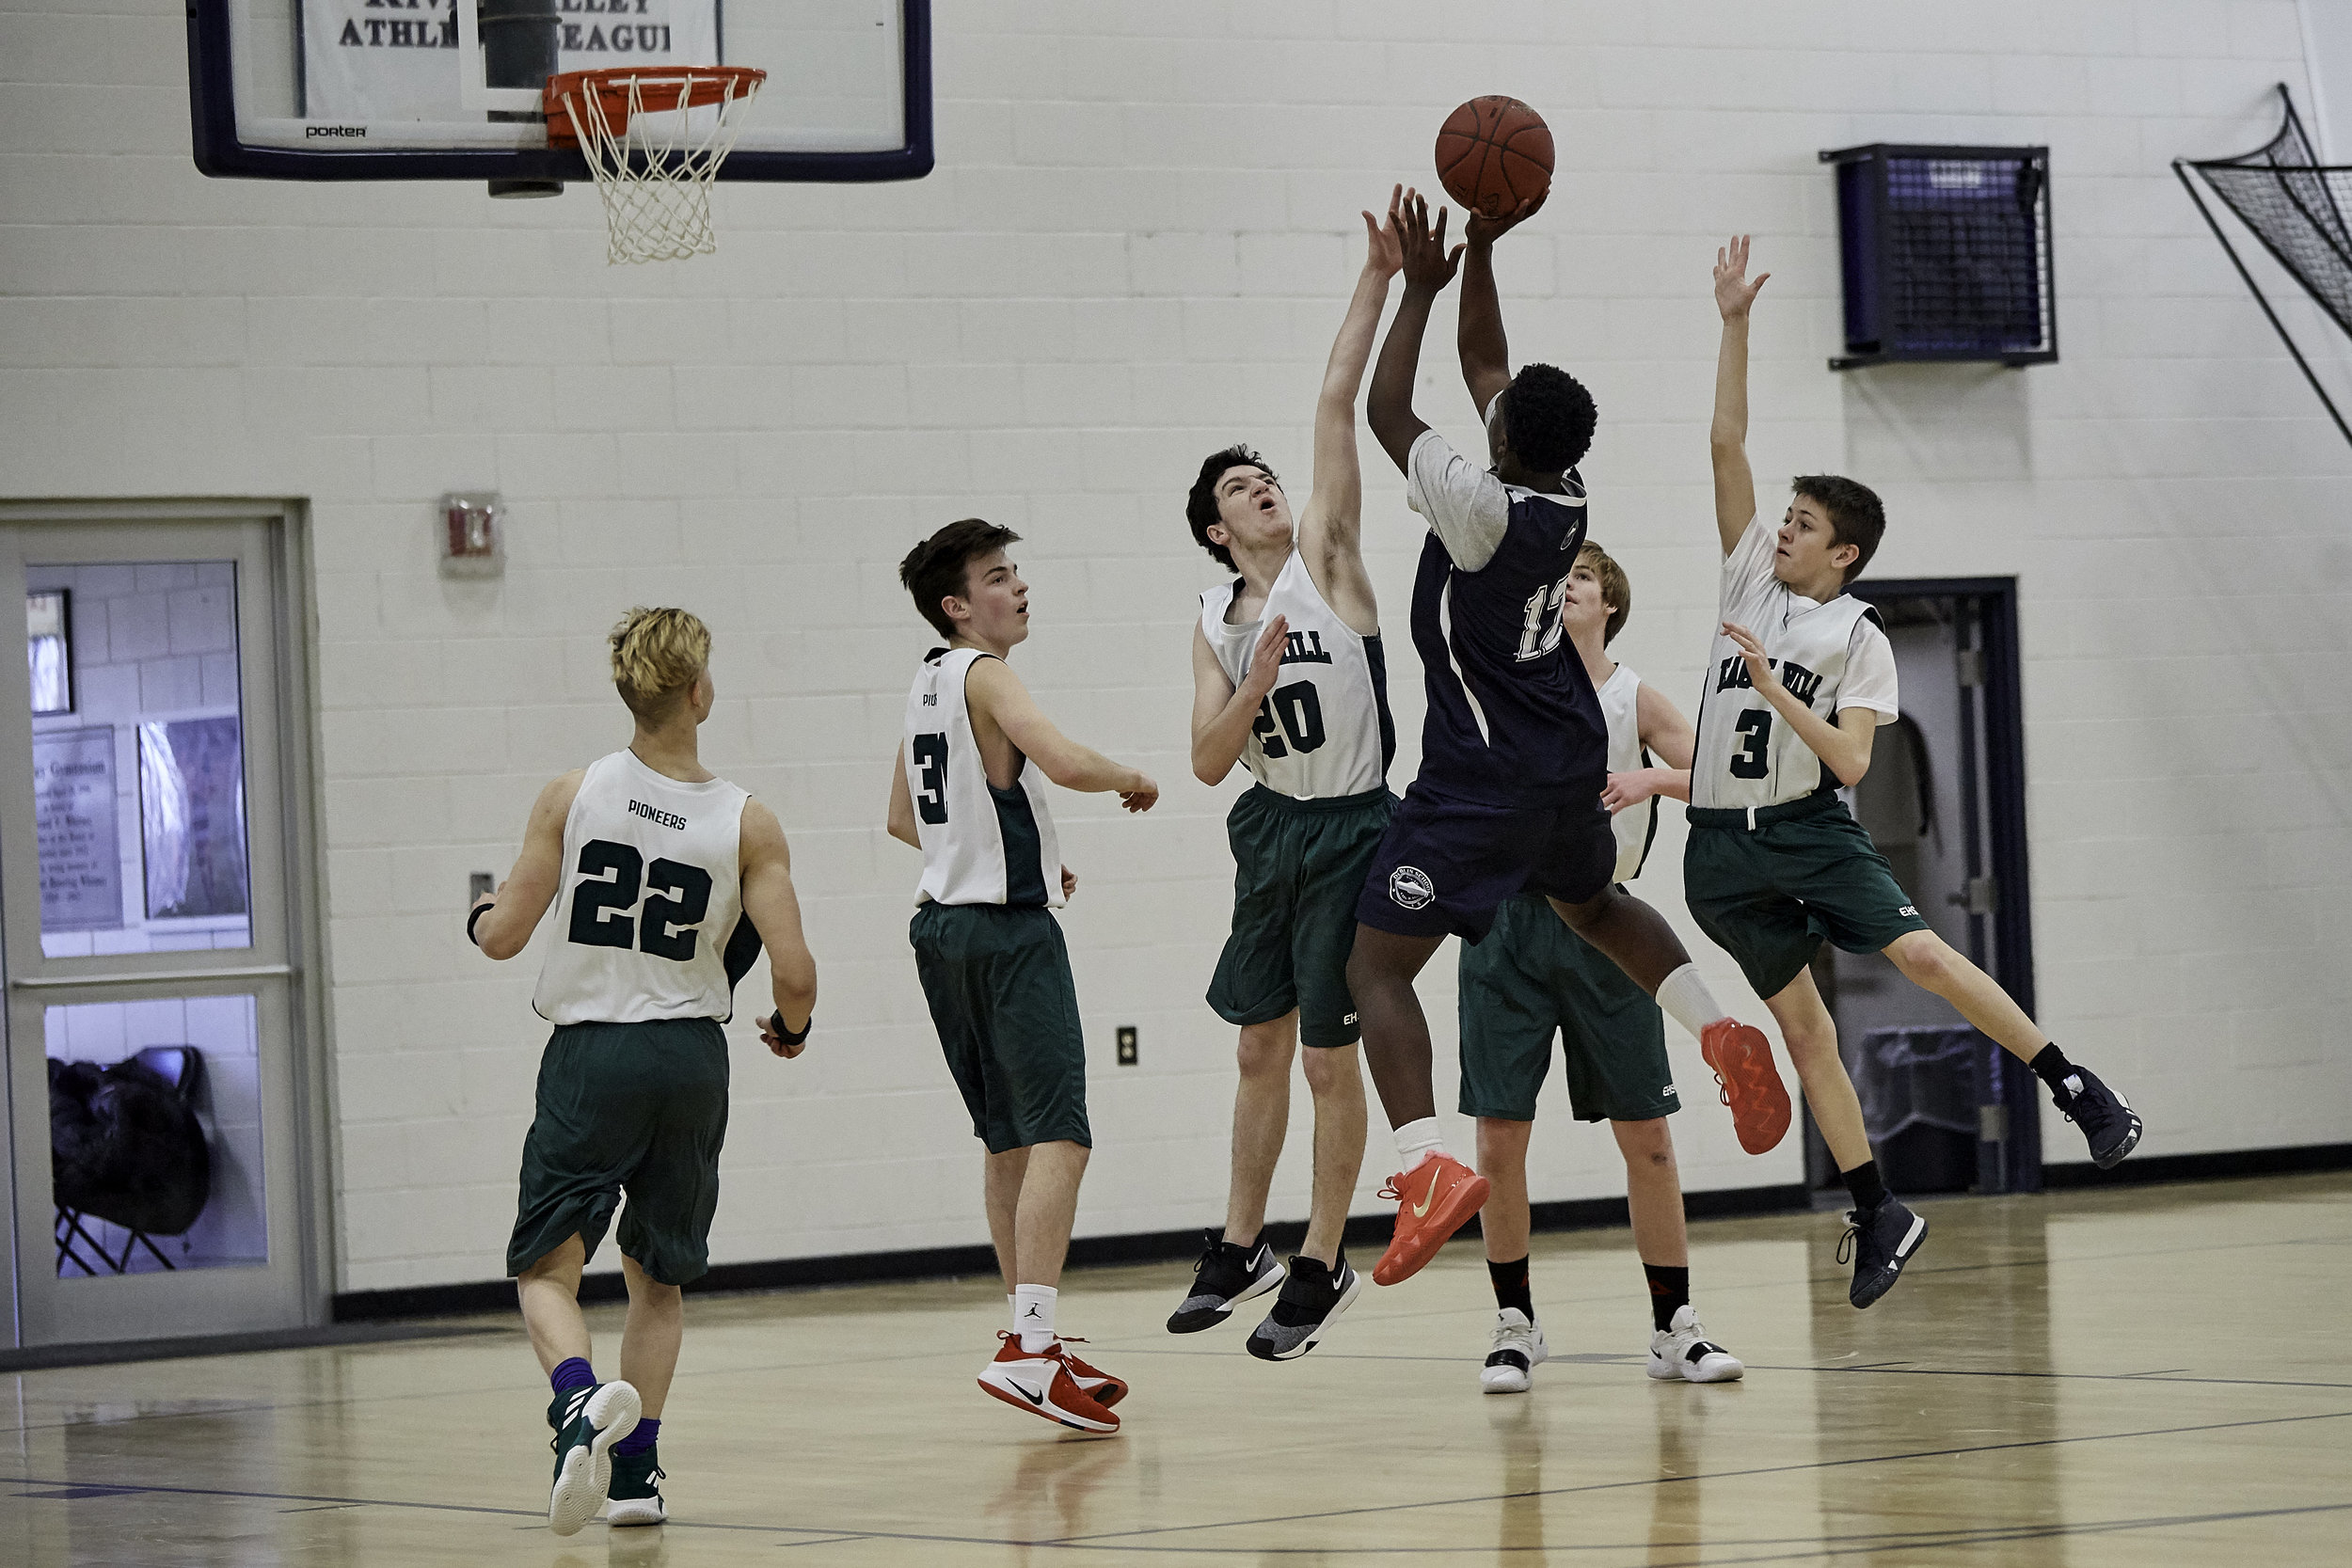 Boys Varsity Basketball vs. Eagle Hill School JV at RVAL Tournament - February 11, 2019 - 167959.jpg